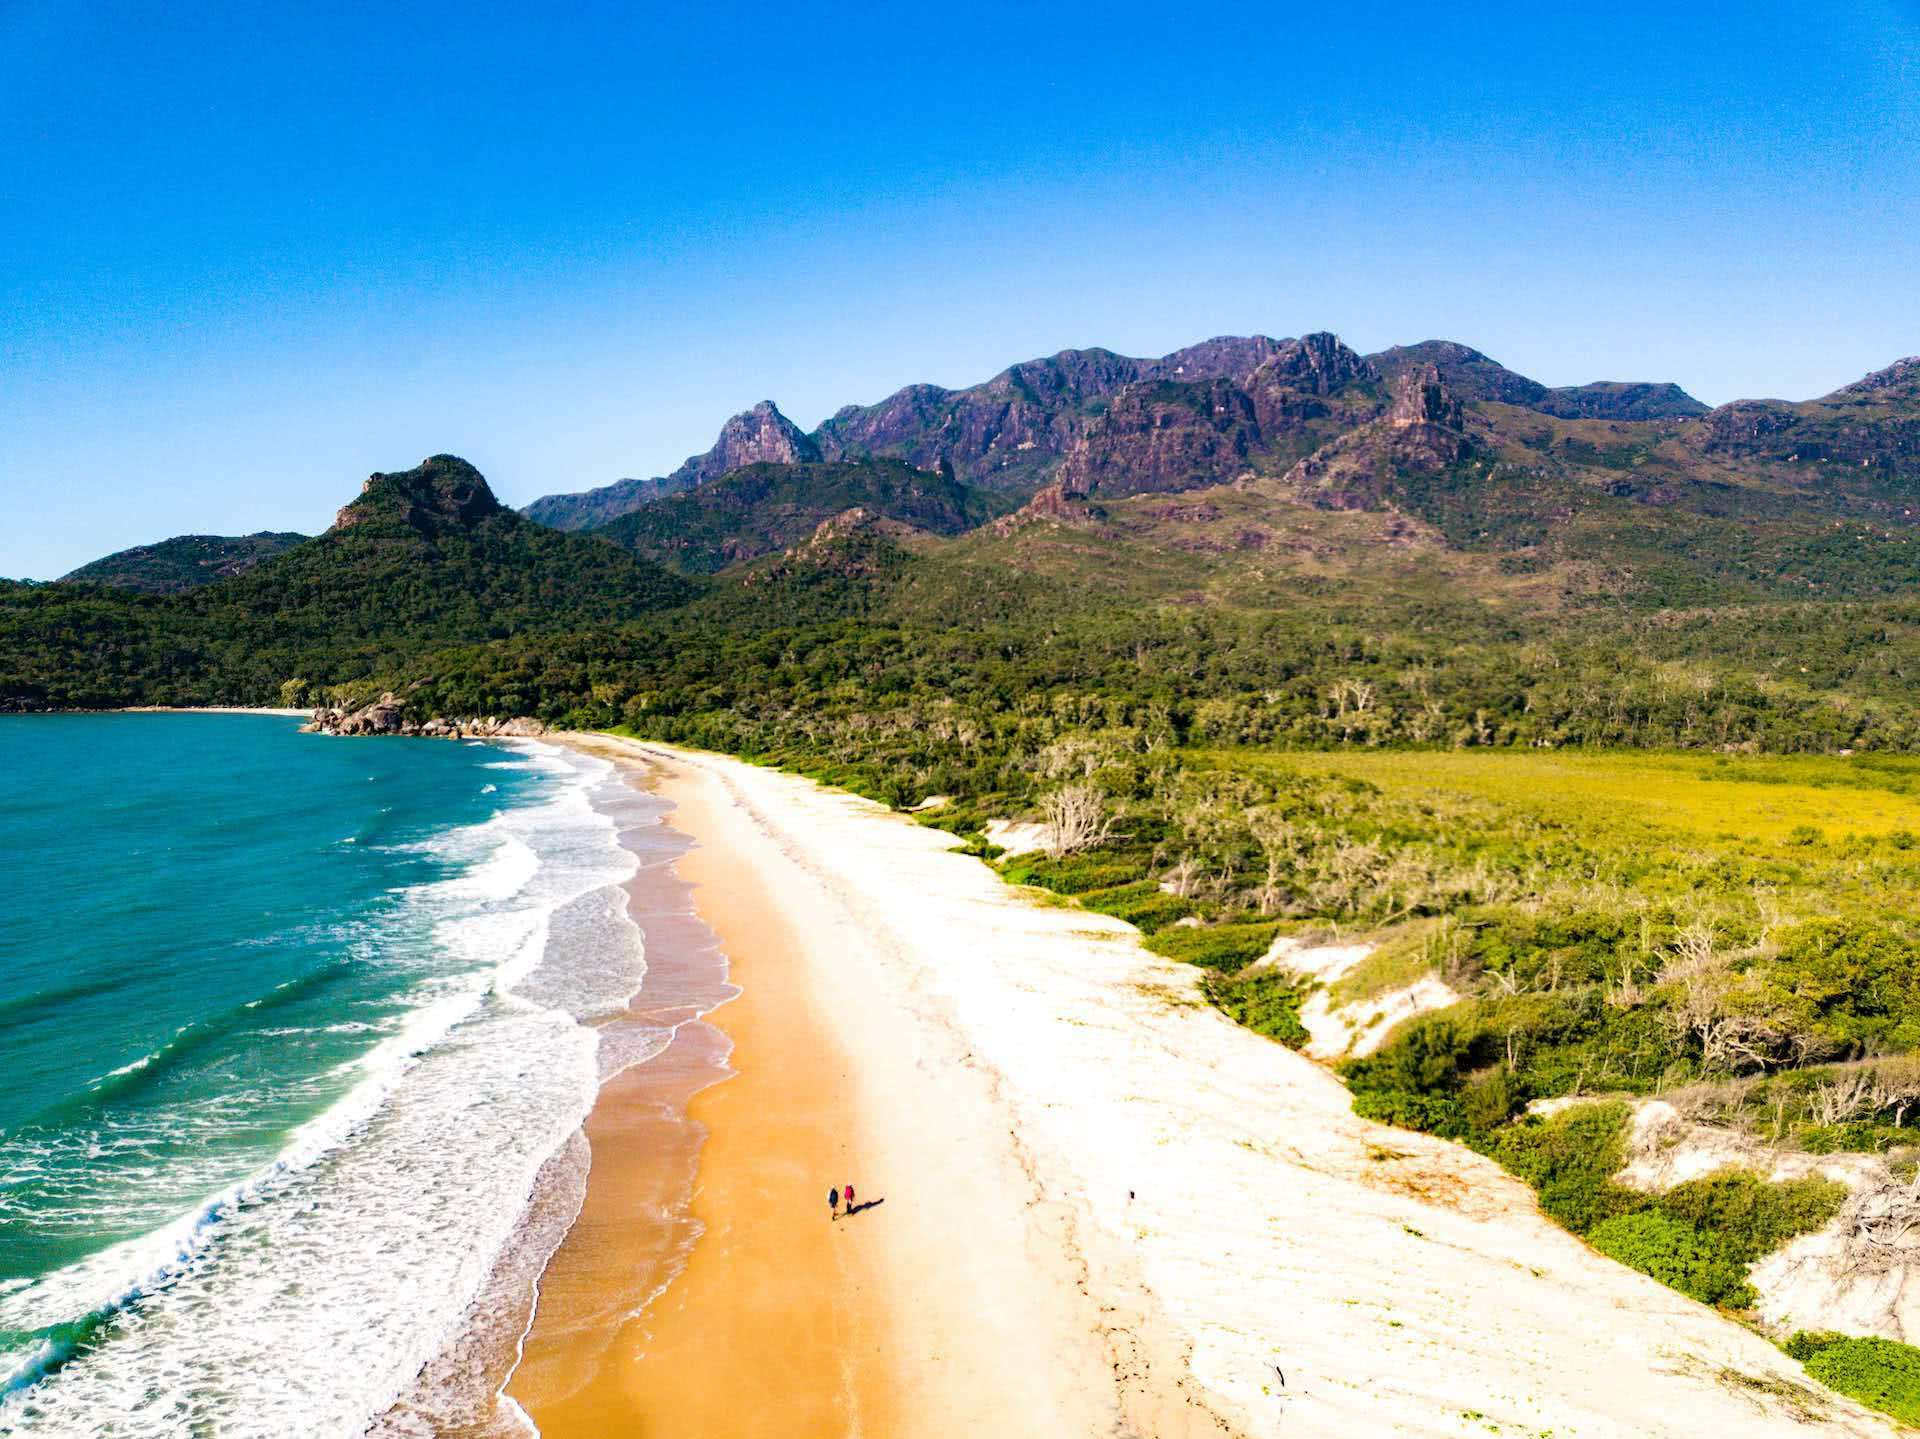 The Thorsborne Trails Offers 4 Days of Tropical Island Trekking, Andrew Boyle, Hinchinbrook Island, Ramsay Bay, mountains, beach, ocean, drone shot, hikers